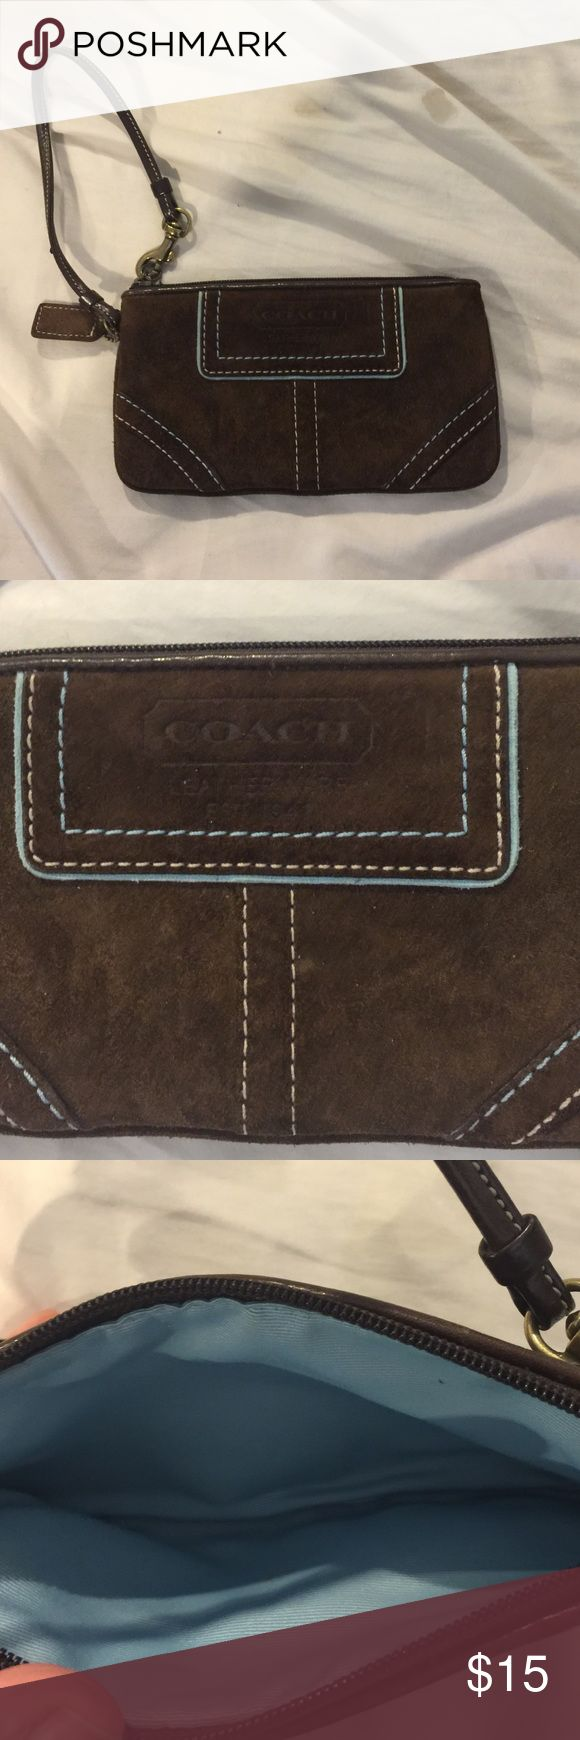 Coach clutch Box53D Coach Bags Clutches & Wristlets